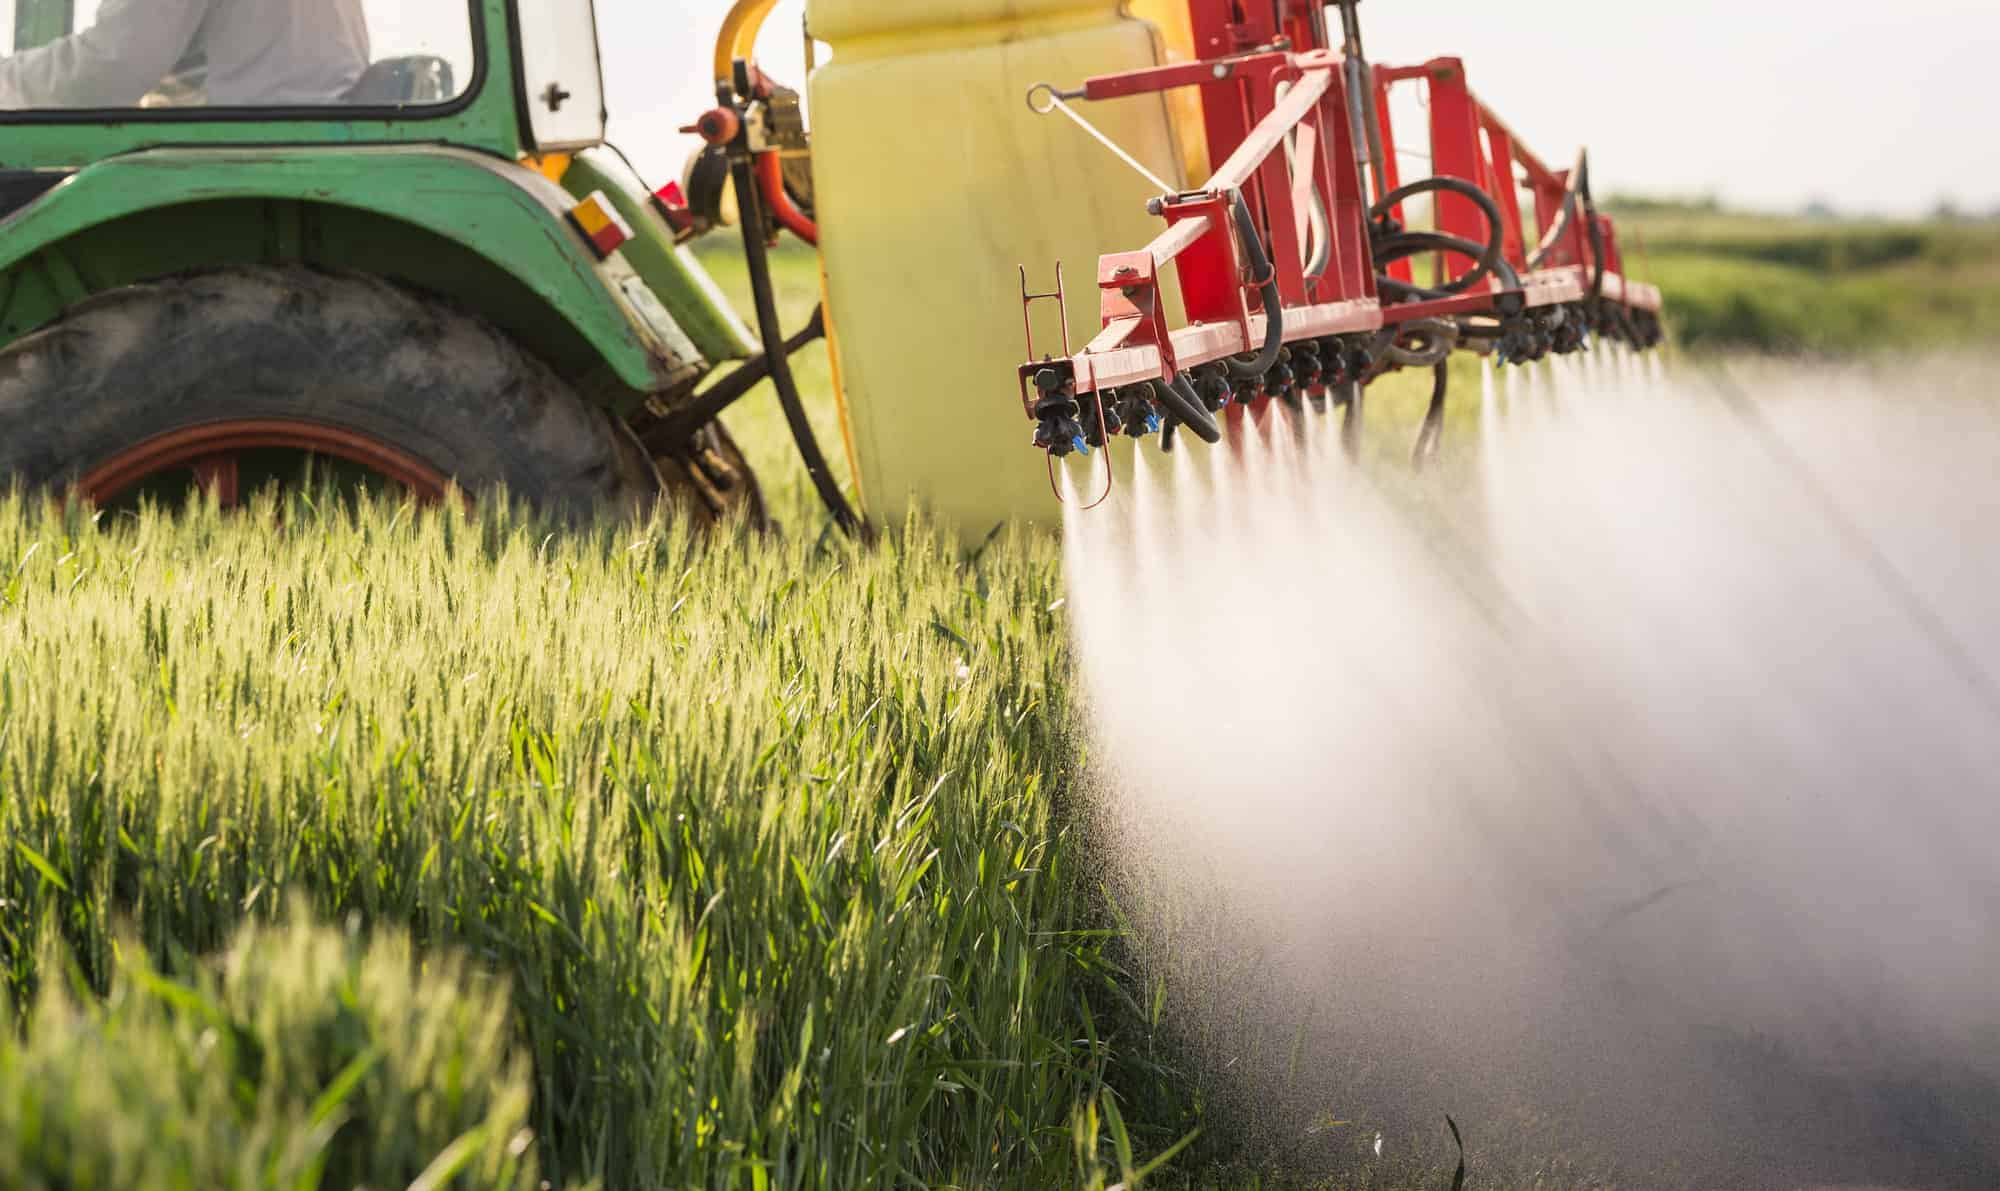 Tractor spraying wheat field with glyphosate